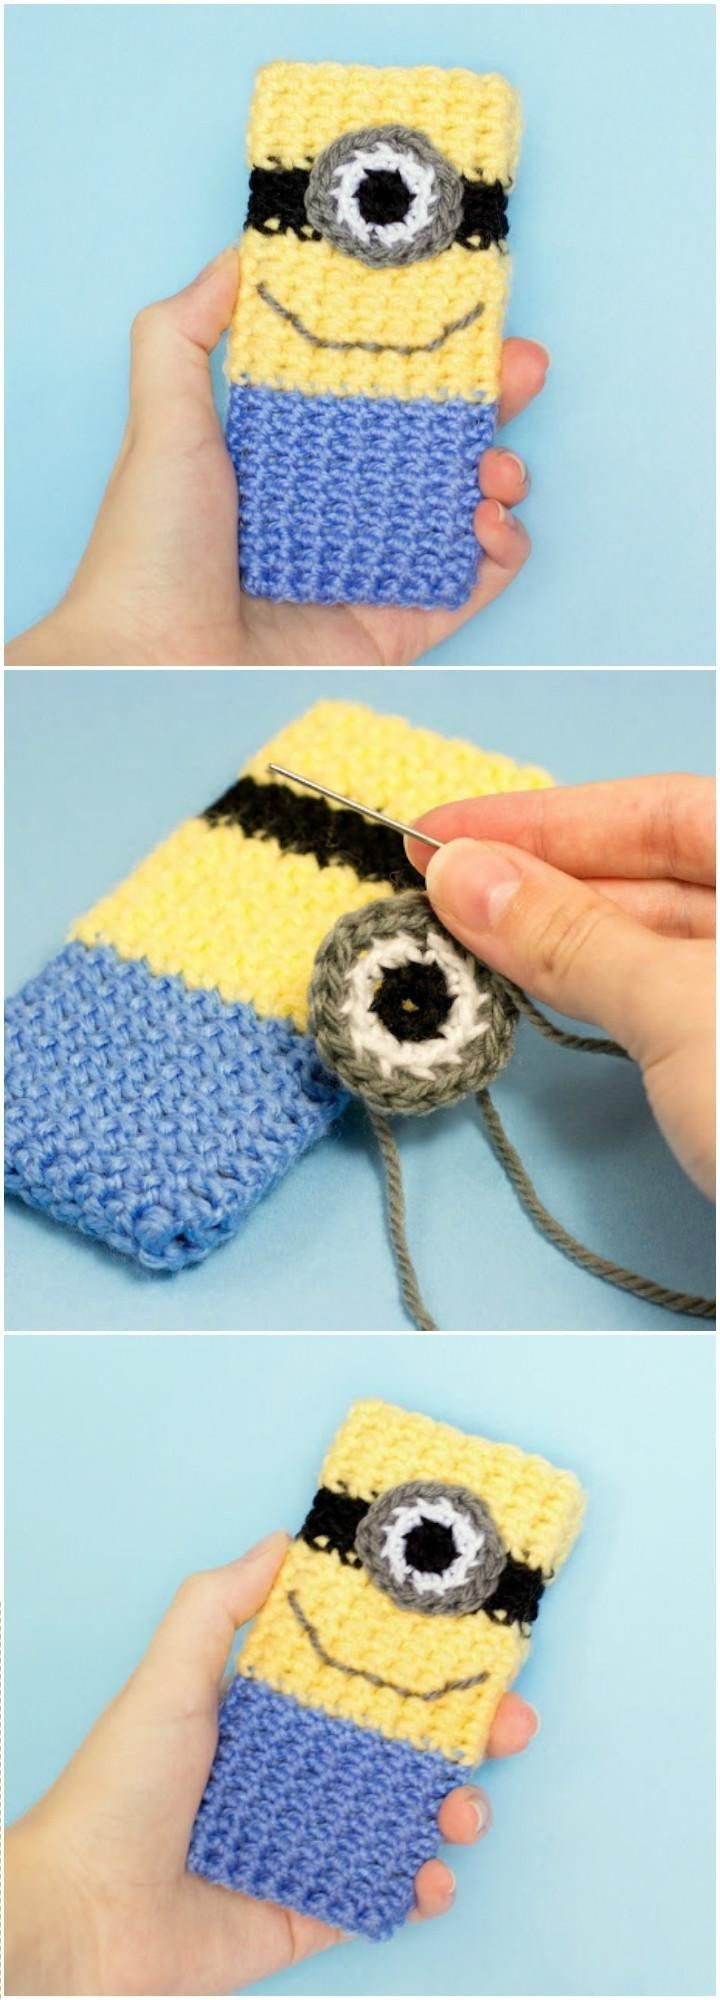 3 Cute Designs for Characters of Free Crochet Patterns for Minions 25 Free Crochet Phone Case Patterns Diy Crafts #minioncrochetpatterns 3 Cute Designs for Characters of Free Crochet Patterns for Minions 25 Free Crochet Phone Case Patterns Diy Crafts #minioncrochetpatterns 3 Cute Designs for Characters of Free Crochet Patterns for Minions 25 Free Crochet Phone Case Patterns Diy Crafts #minioncrochetpatterns 3 Cute Designs for Characters of Free Crochet Patterns for Minions 25 Free Crochet Phone #minioncrochetpatterns